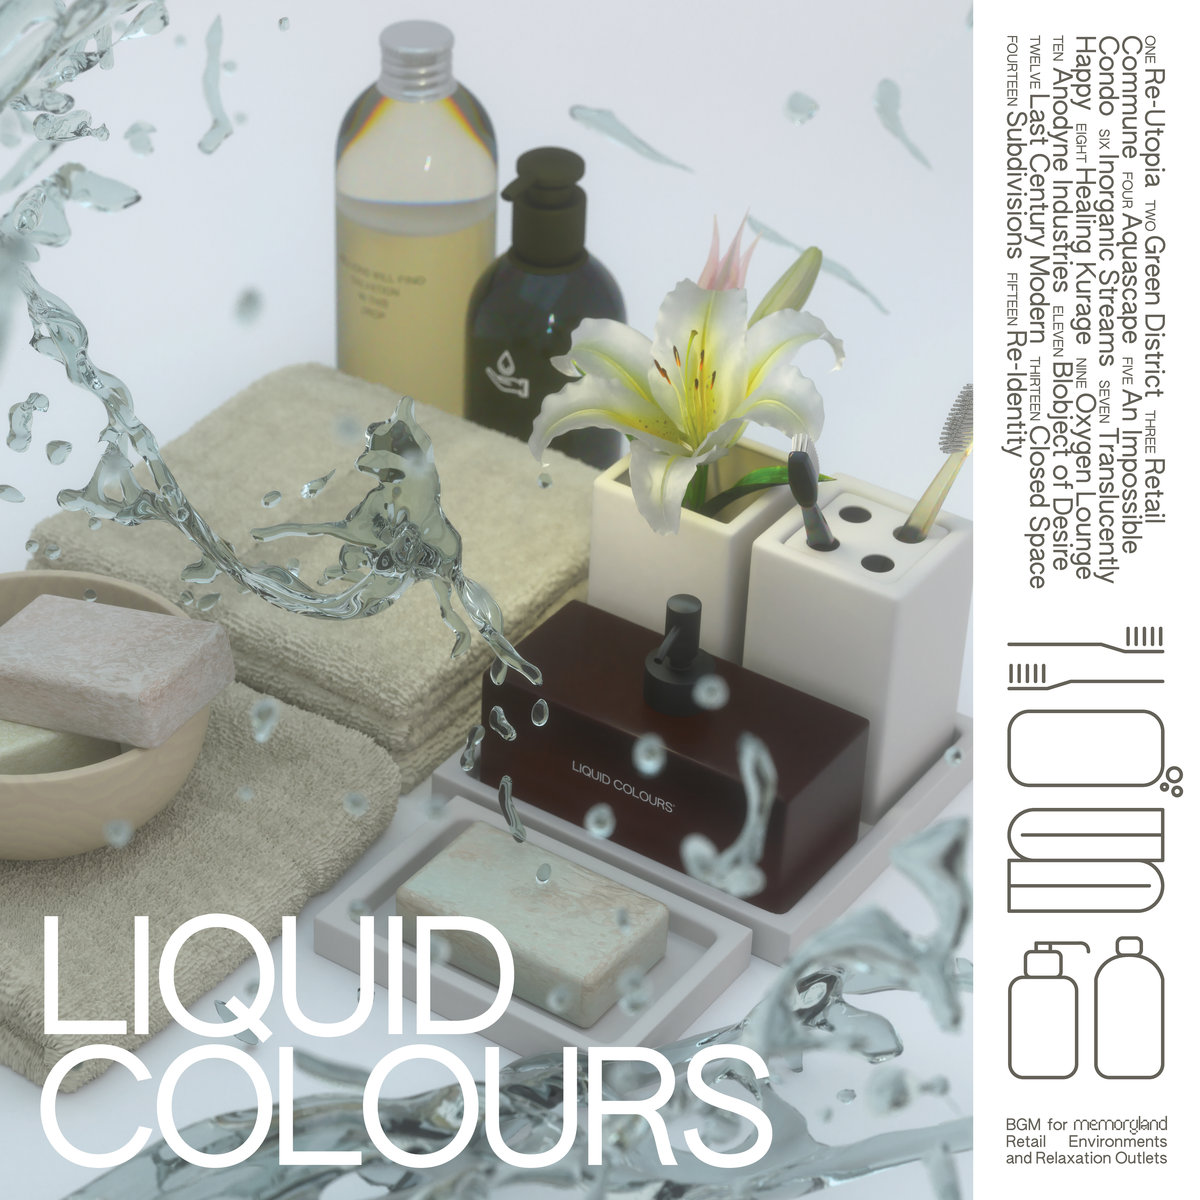 CFCF 'Liquid Colours'